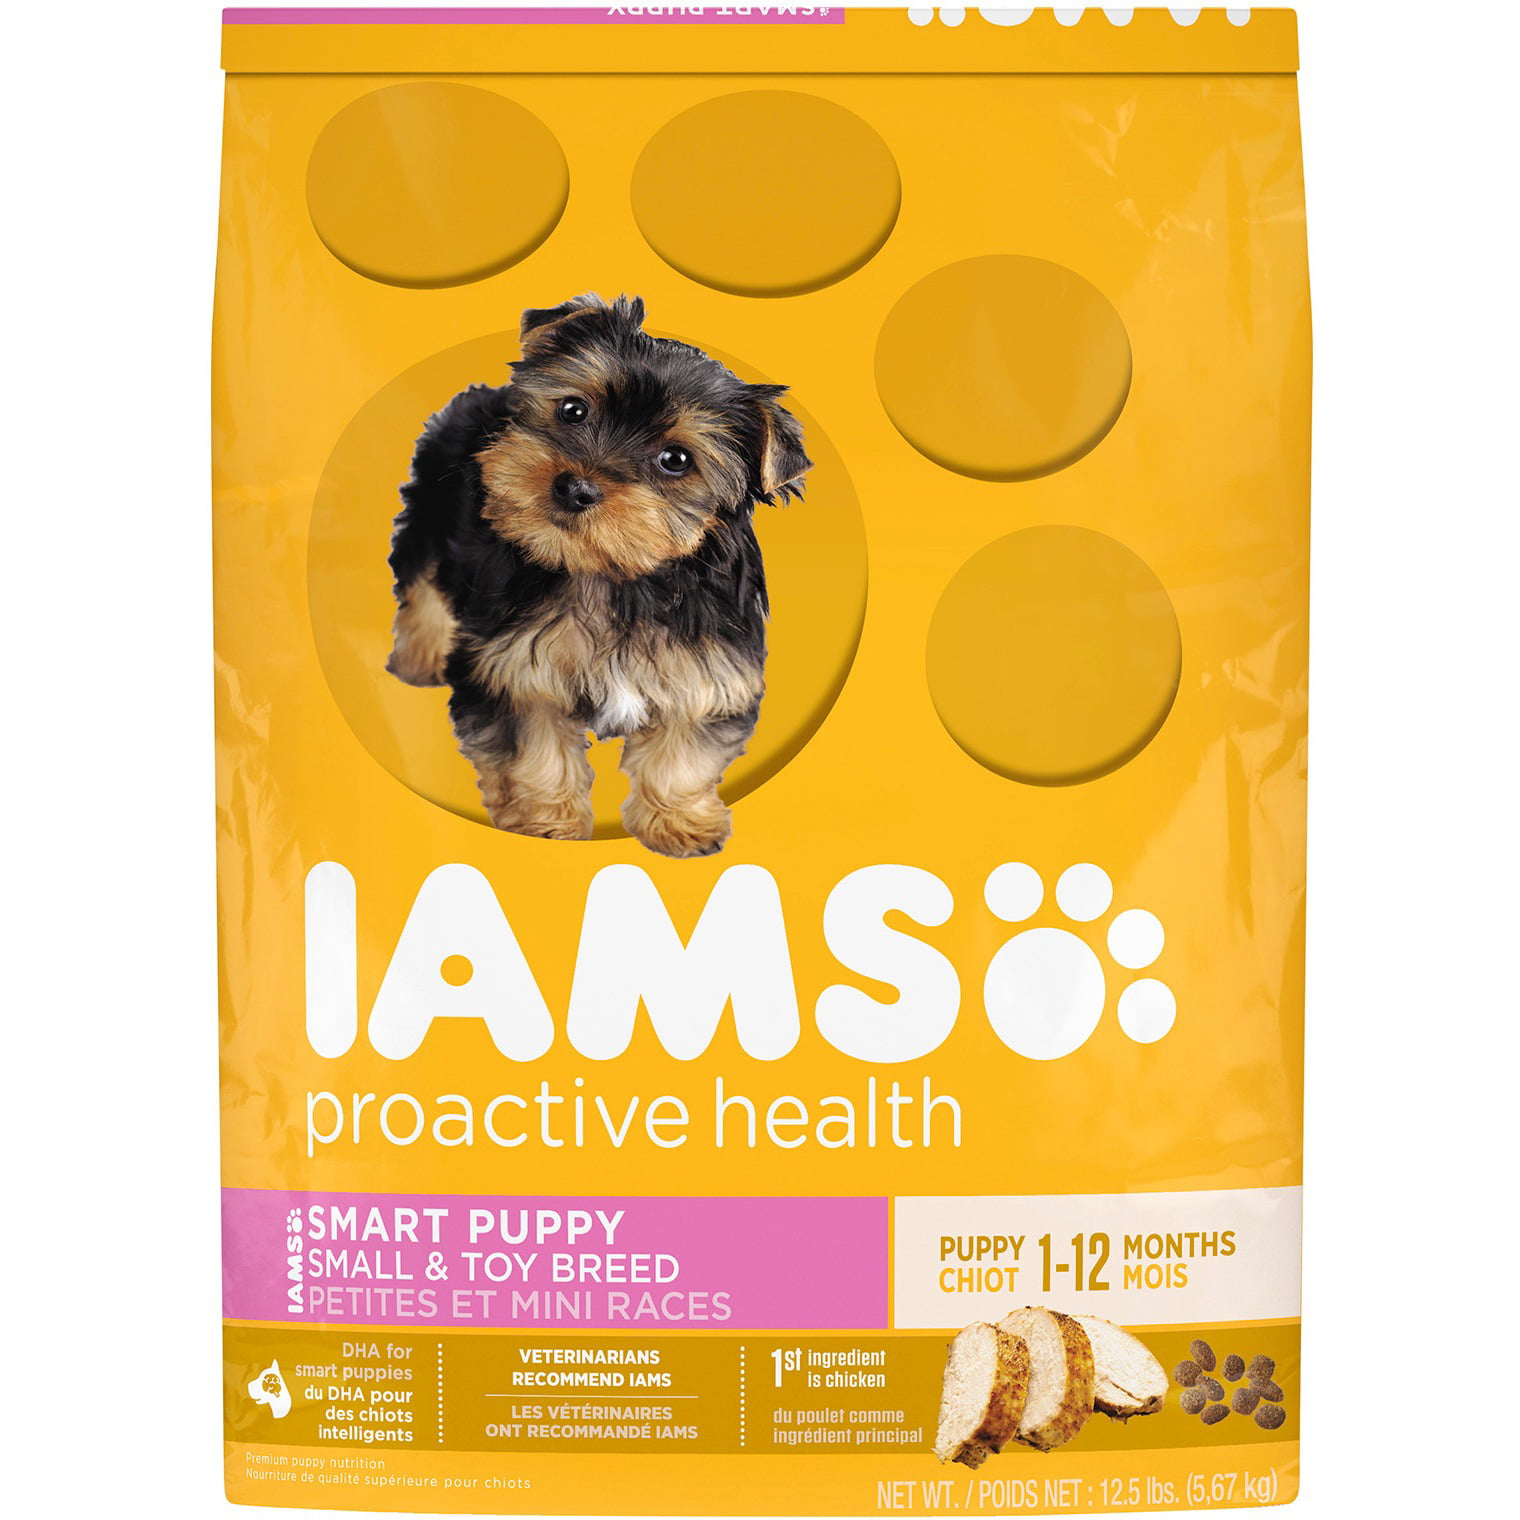 Iams Proactive Health Smart Puppy Small & Toy Breed - Walmart.com